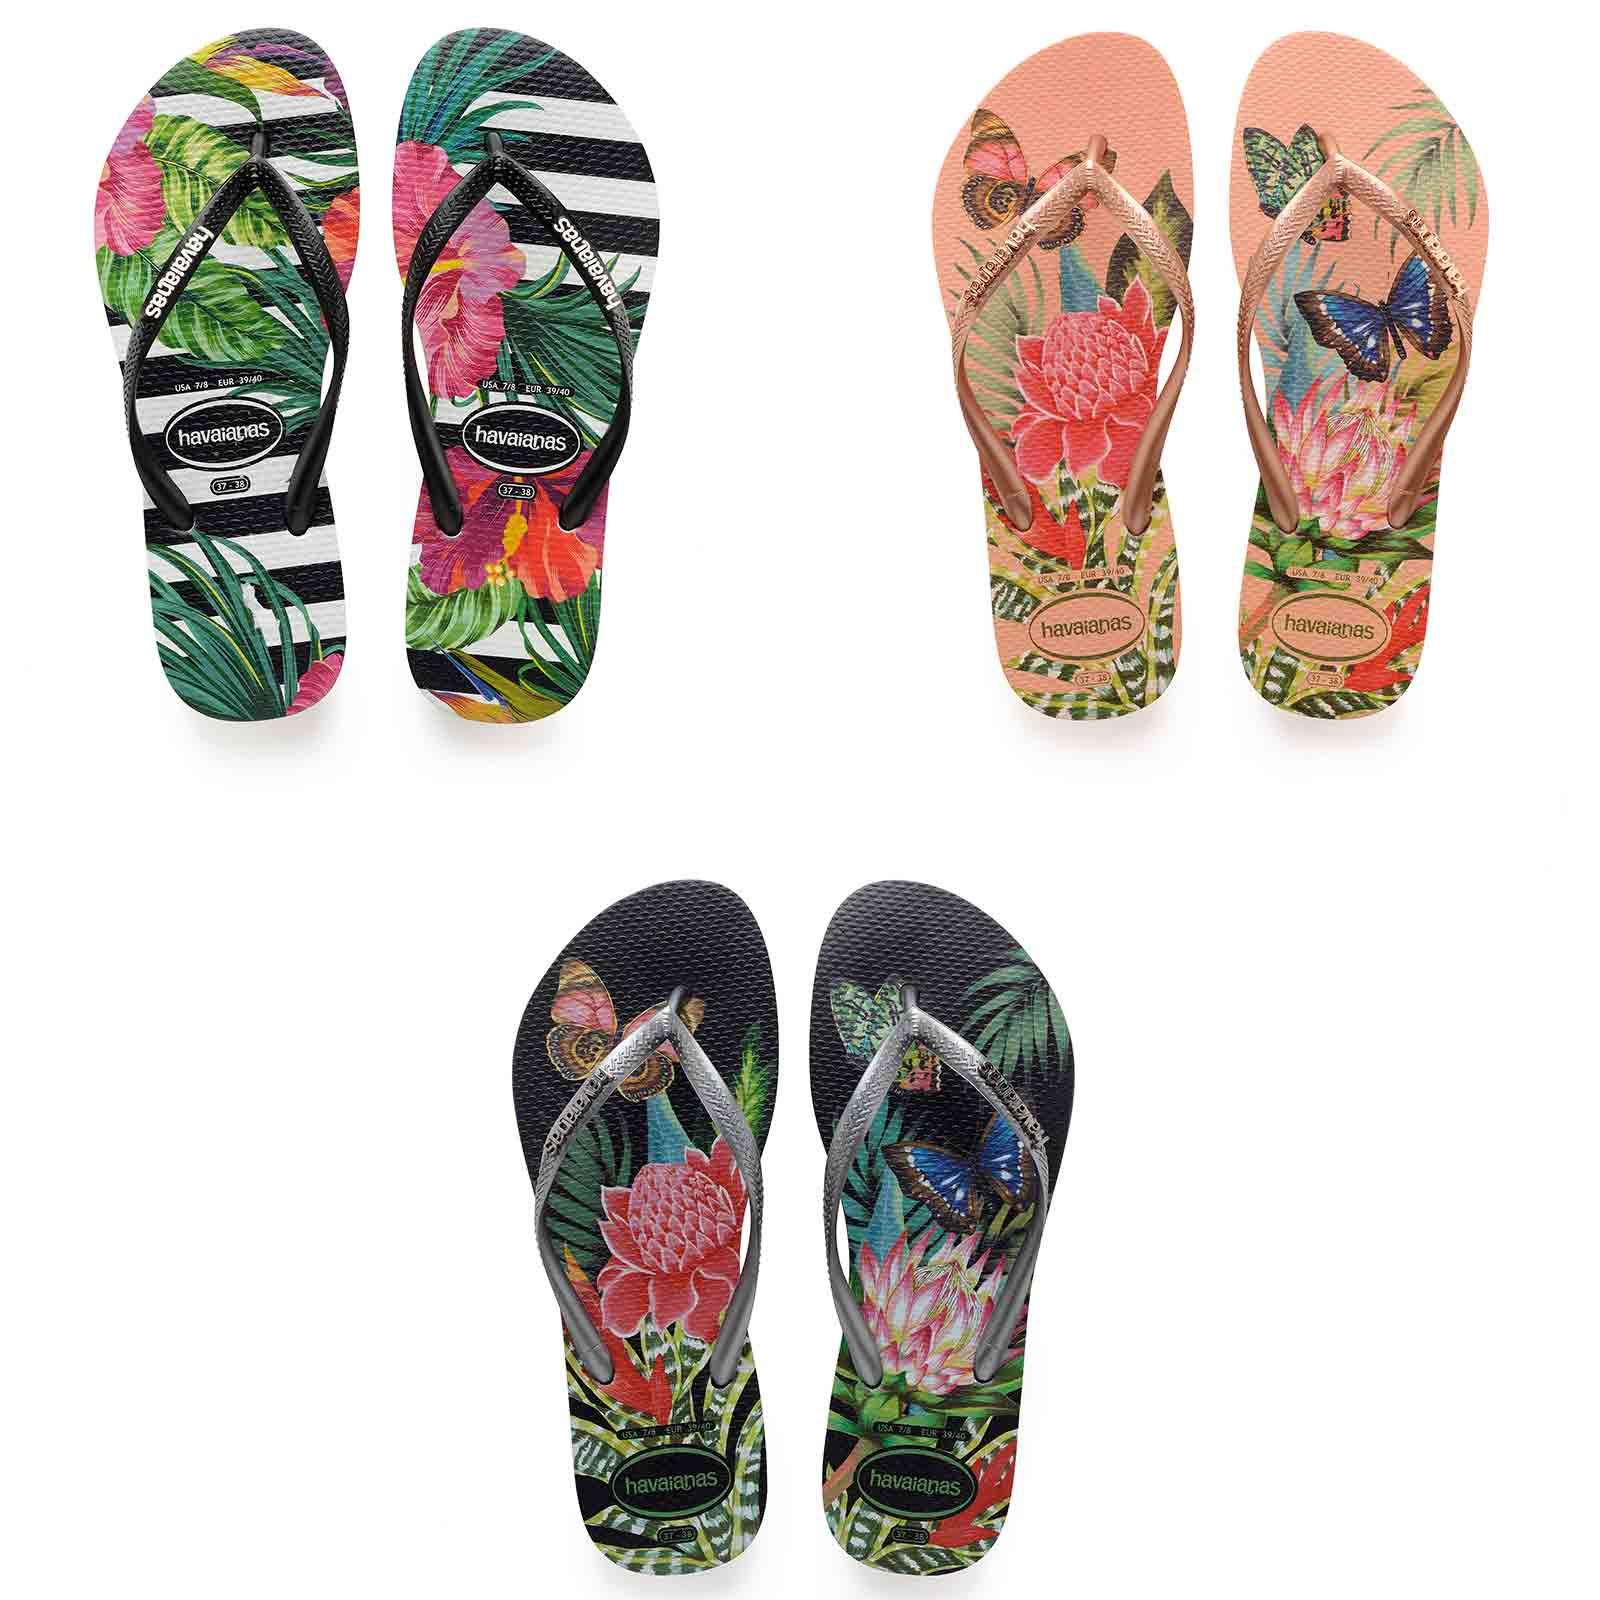 14d06ed76 Details about Havaianas Slim Tropical   Floral Print Flip Flops Summer  Beach Pool Sandals